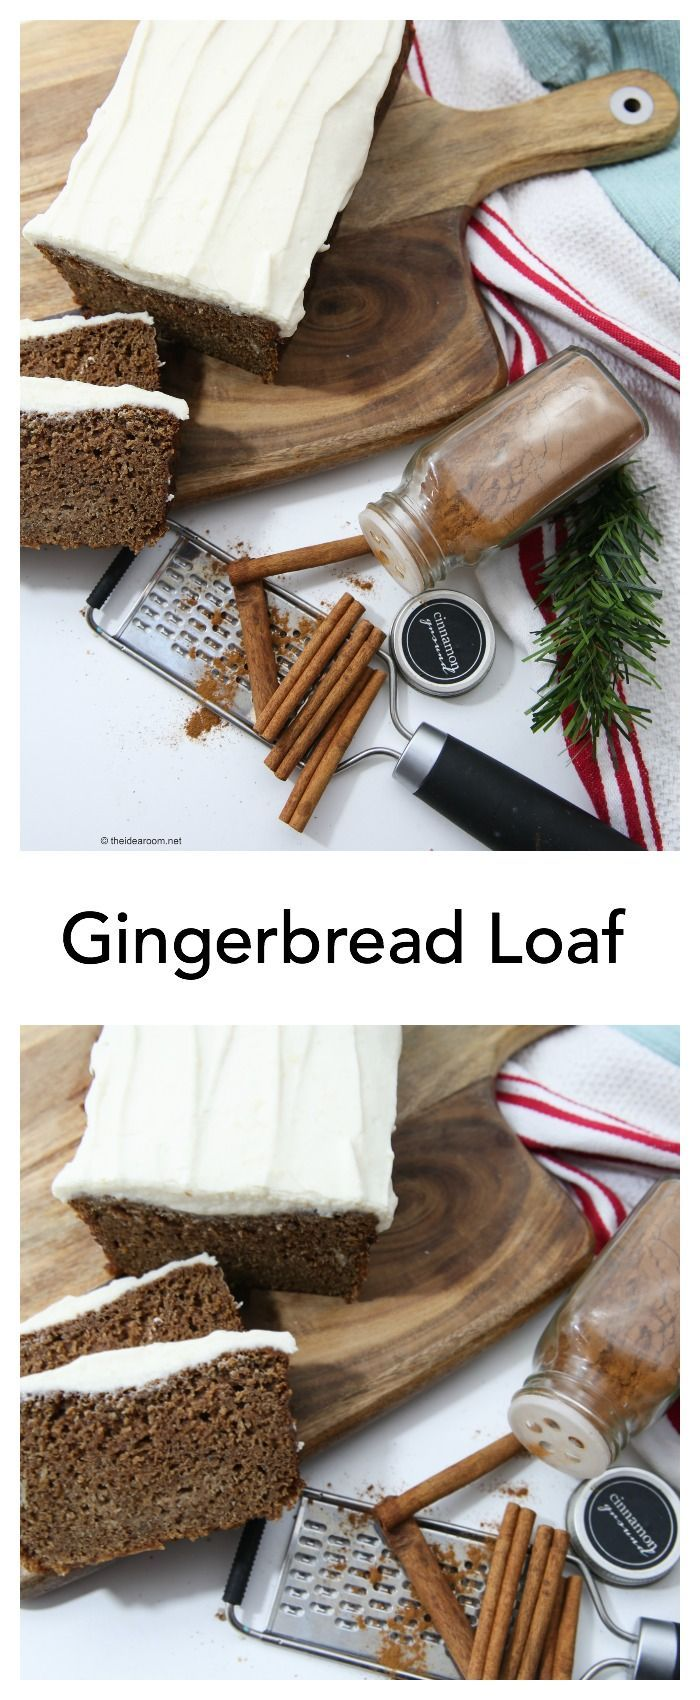 Recipes-Bread| Gingerbread Loaf with Cream Cheese Frosting